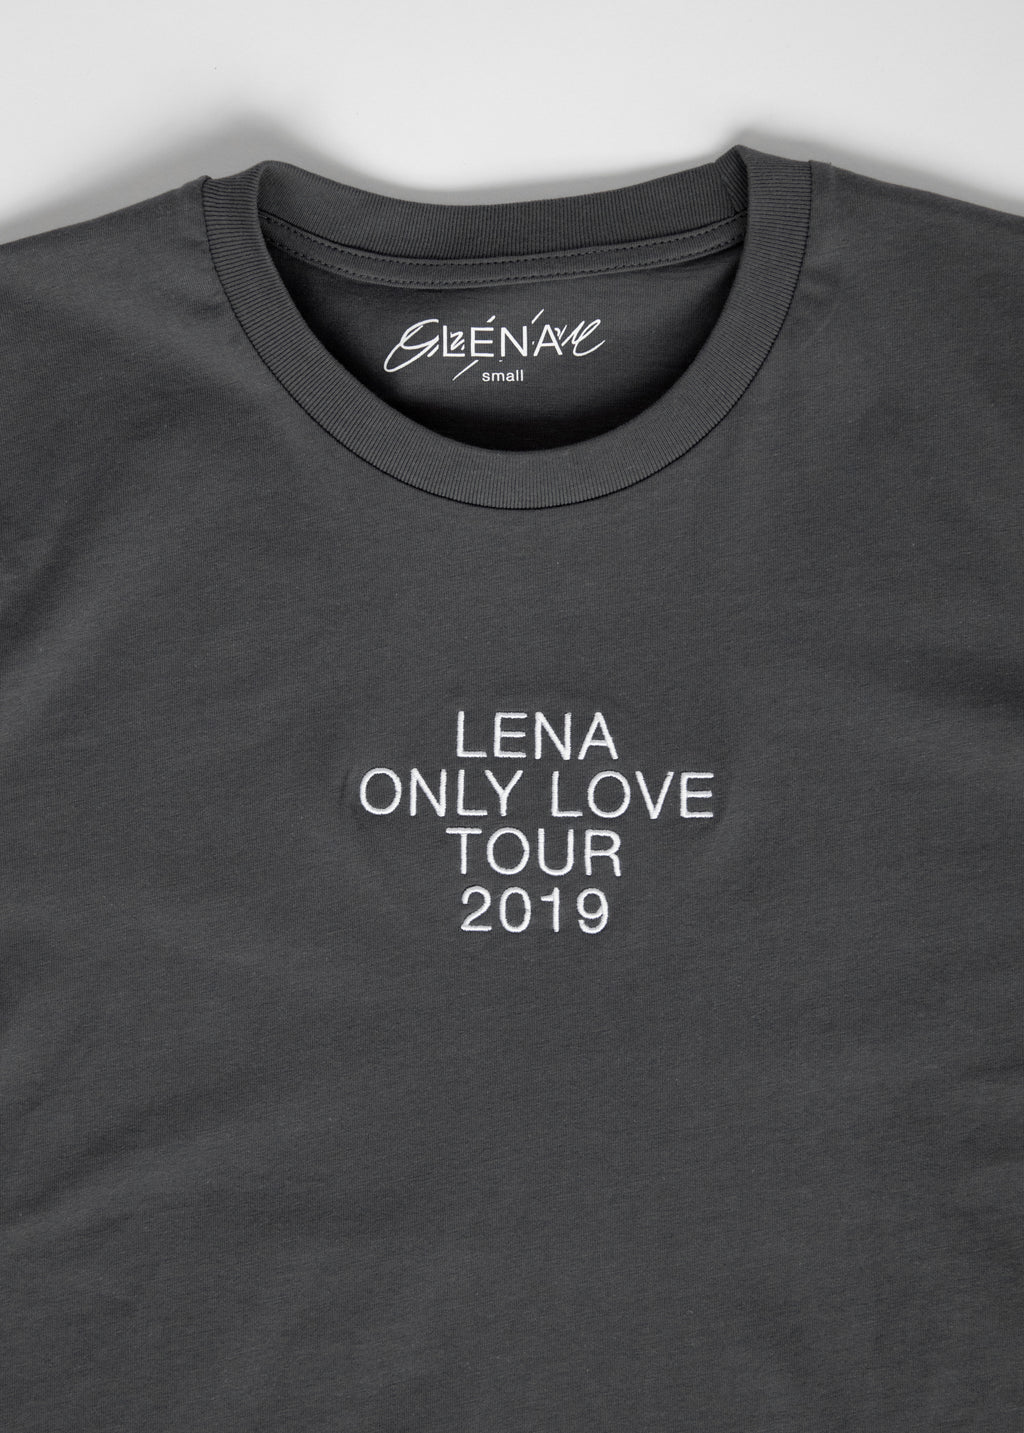 Lena - ONLY LOVE Tour T-Shirt Grau